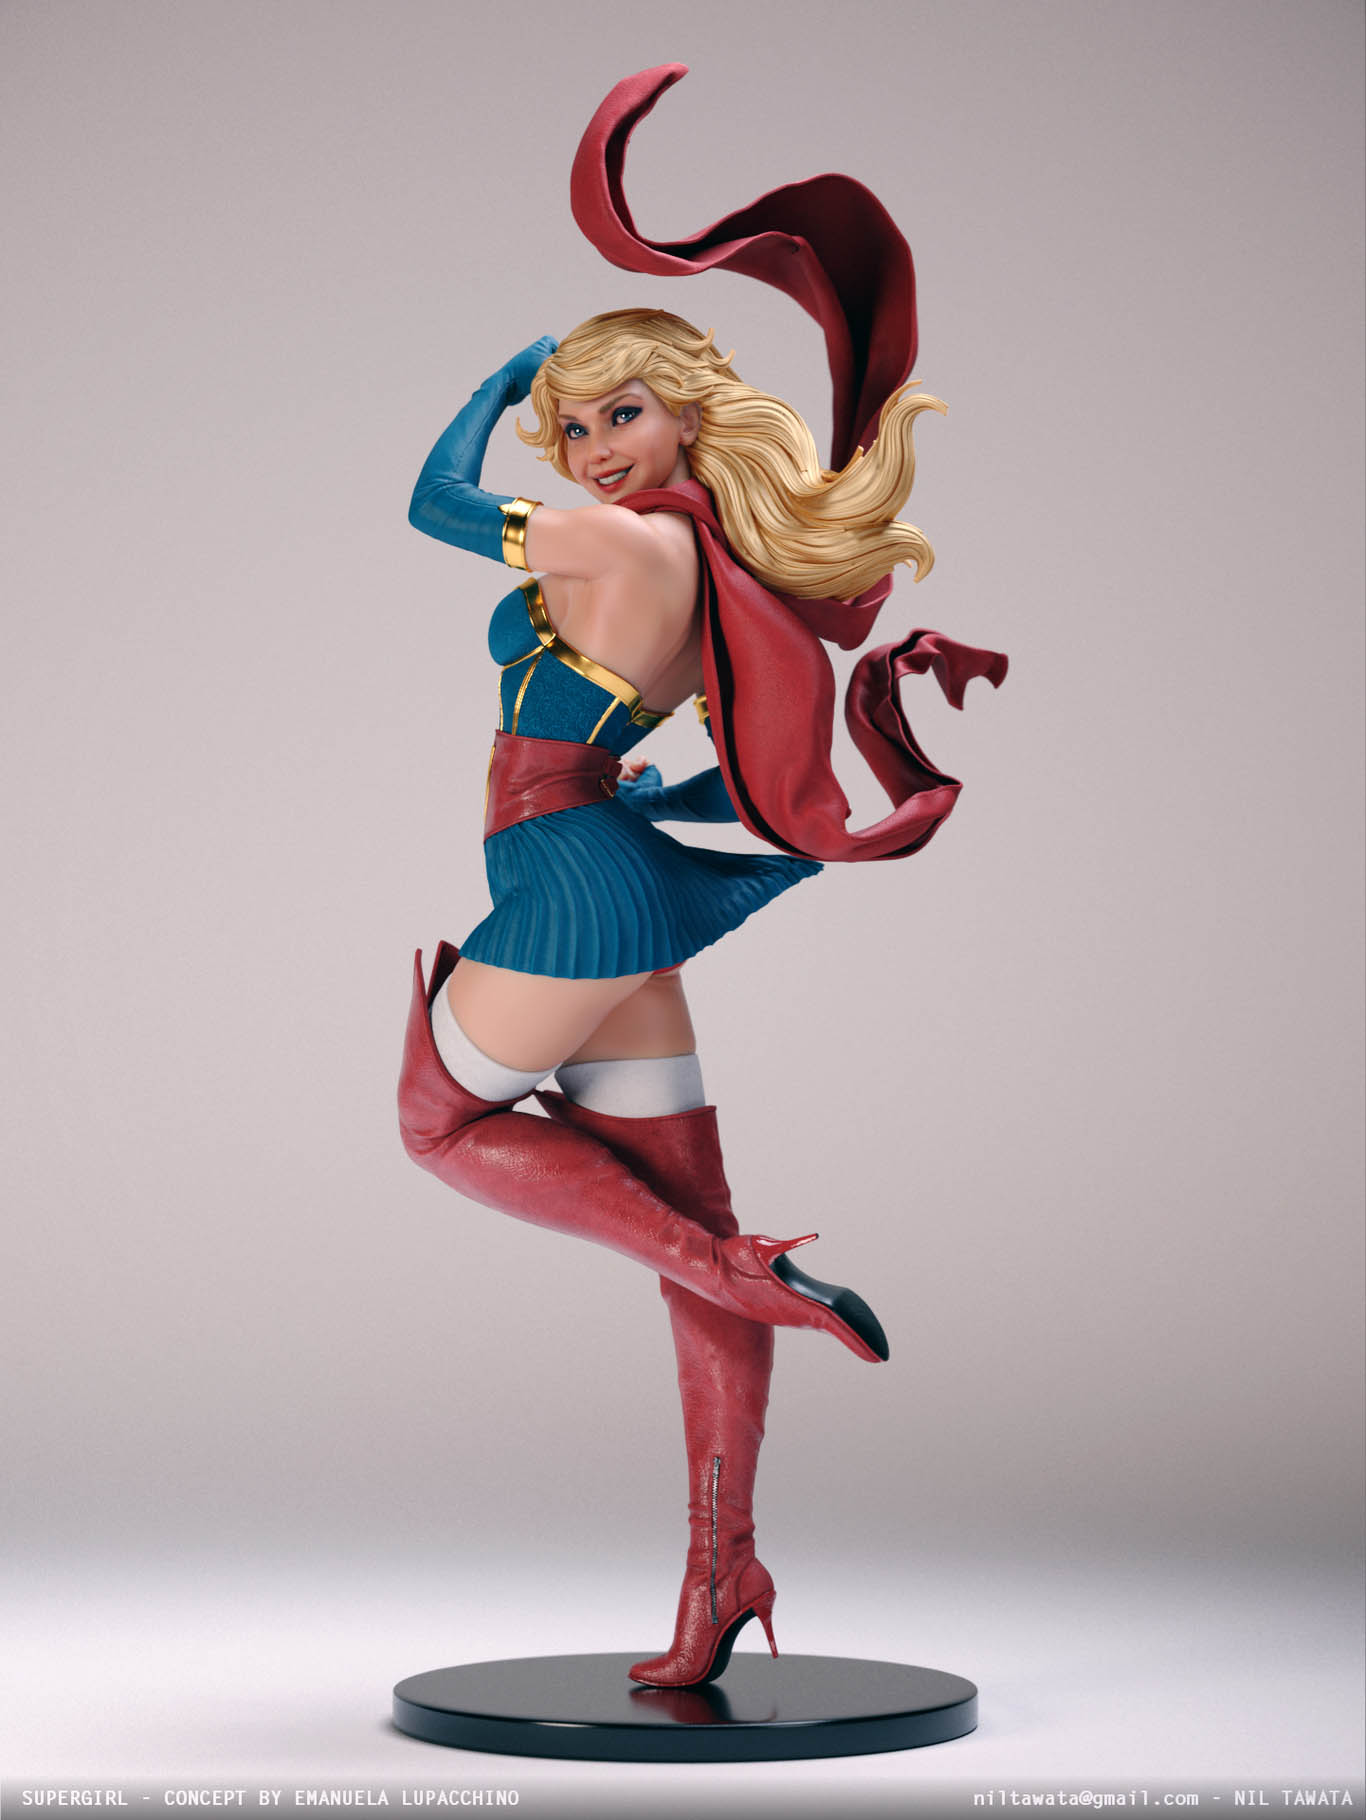 3d model character supergirl